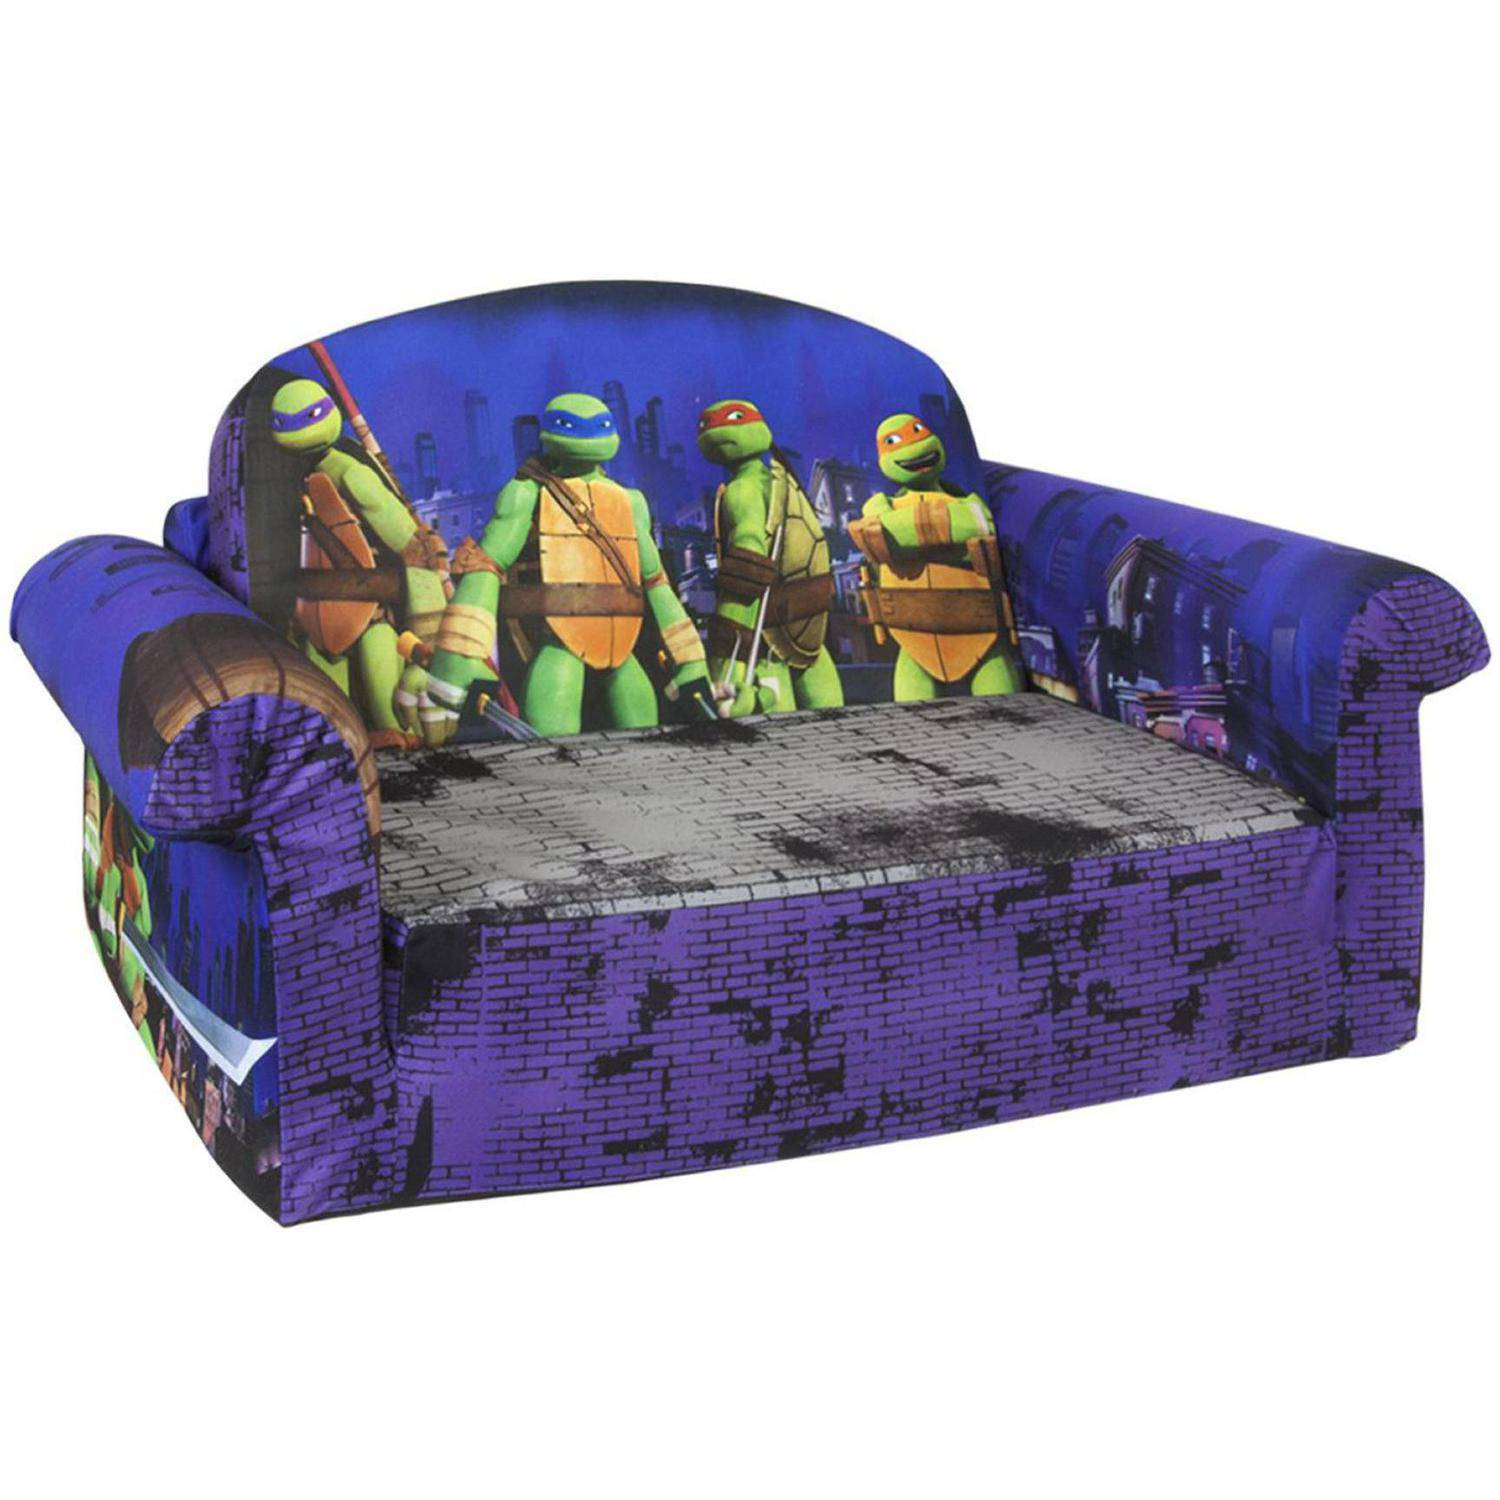 Marshmallow 2 In 1 Flip Open Sofa Teenage Mutant Ninja Turtles